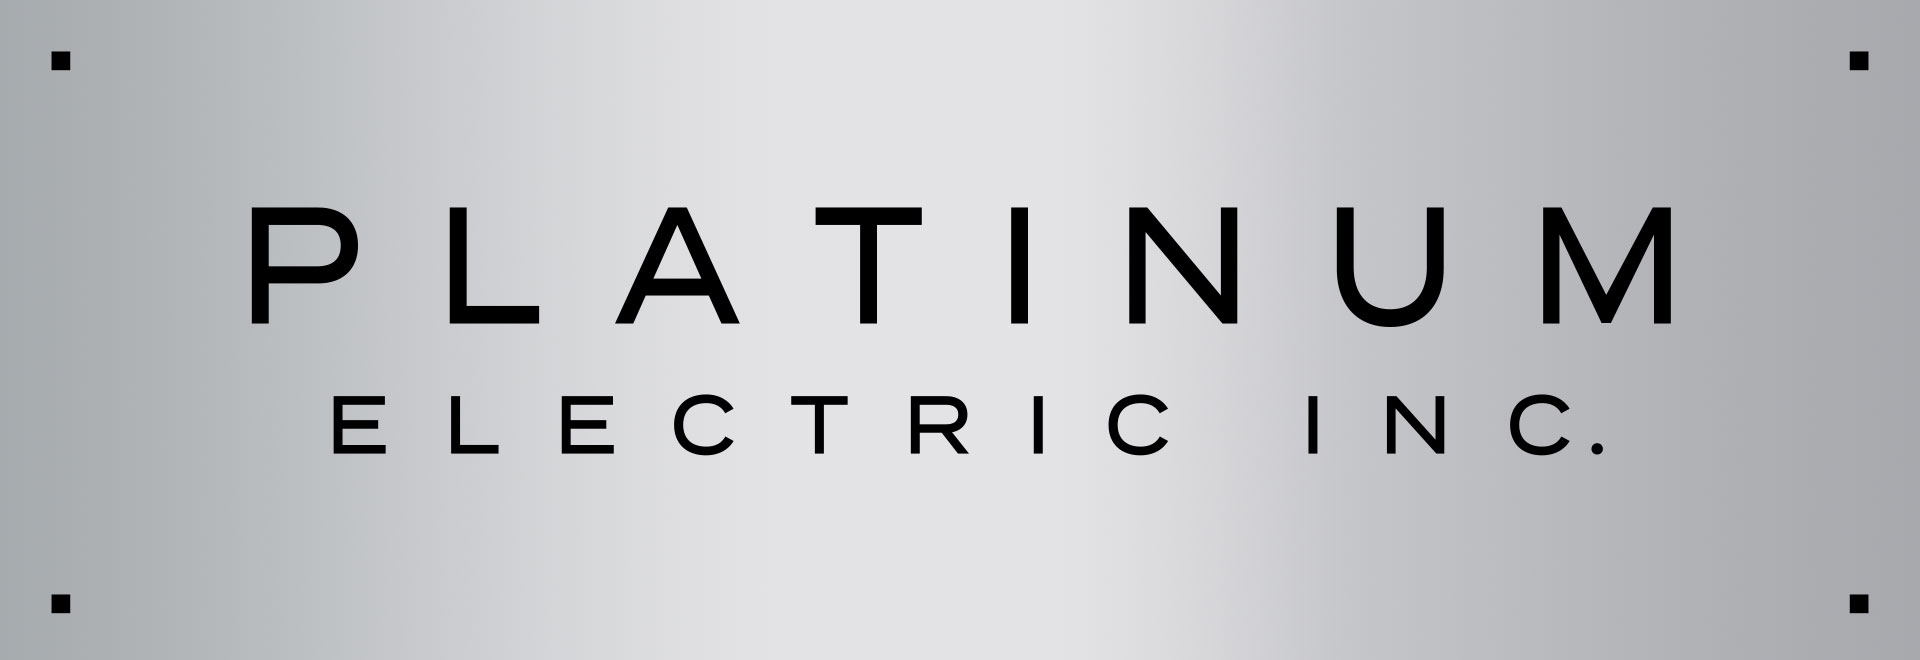 platinum-electric-inc-logo